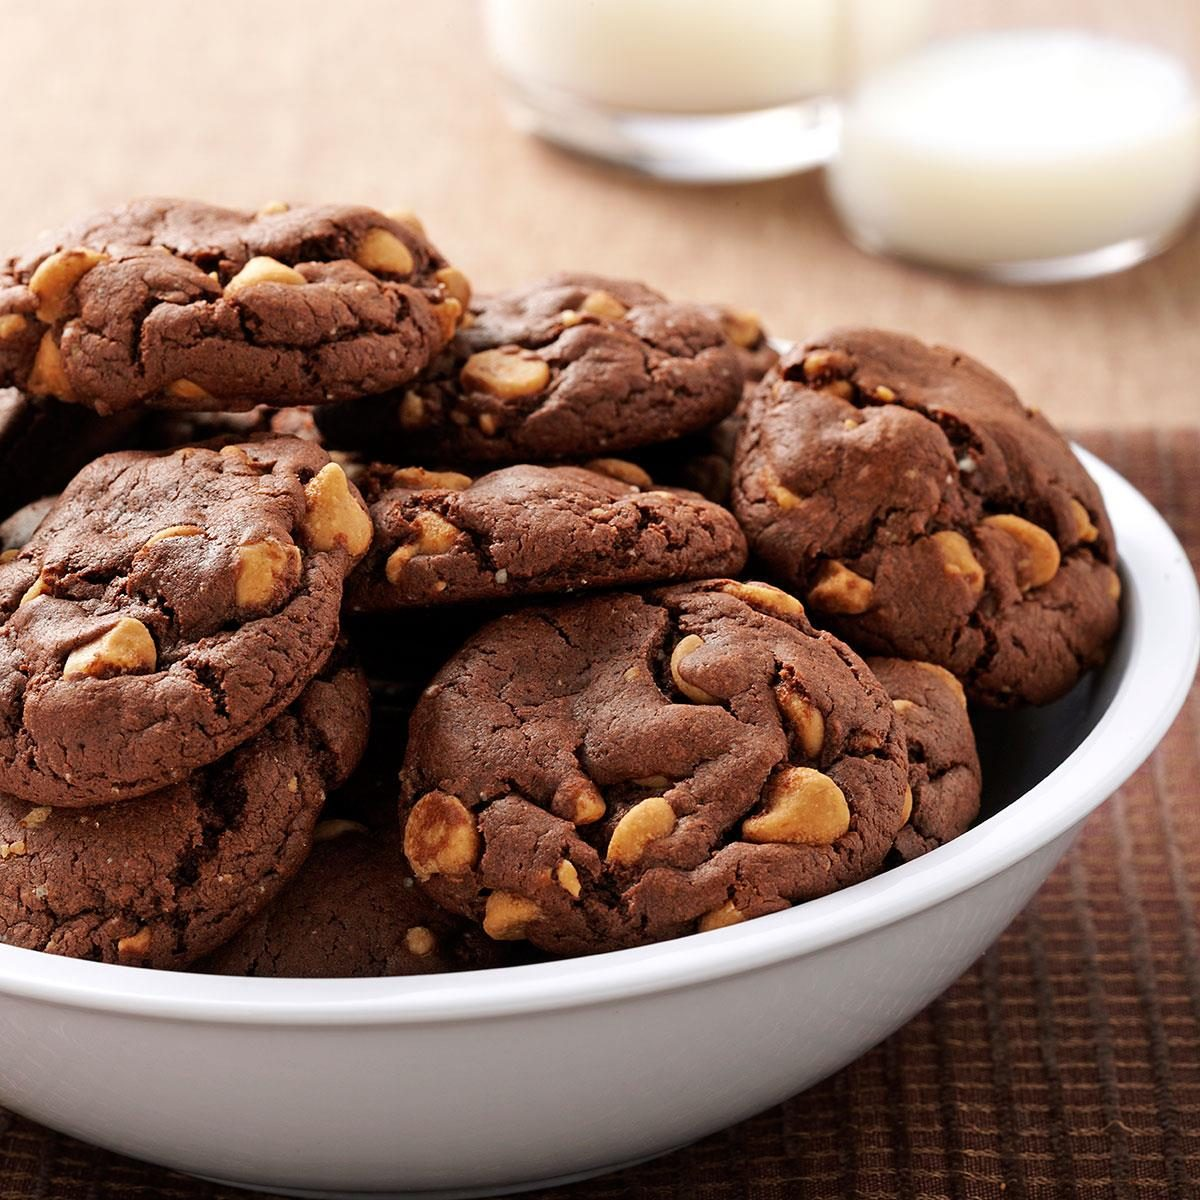 Chocolate Peanut Butter Chip Cookies Recipe | Taste of Home